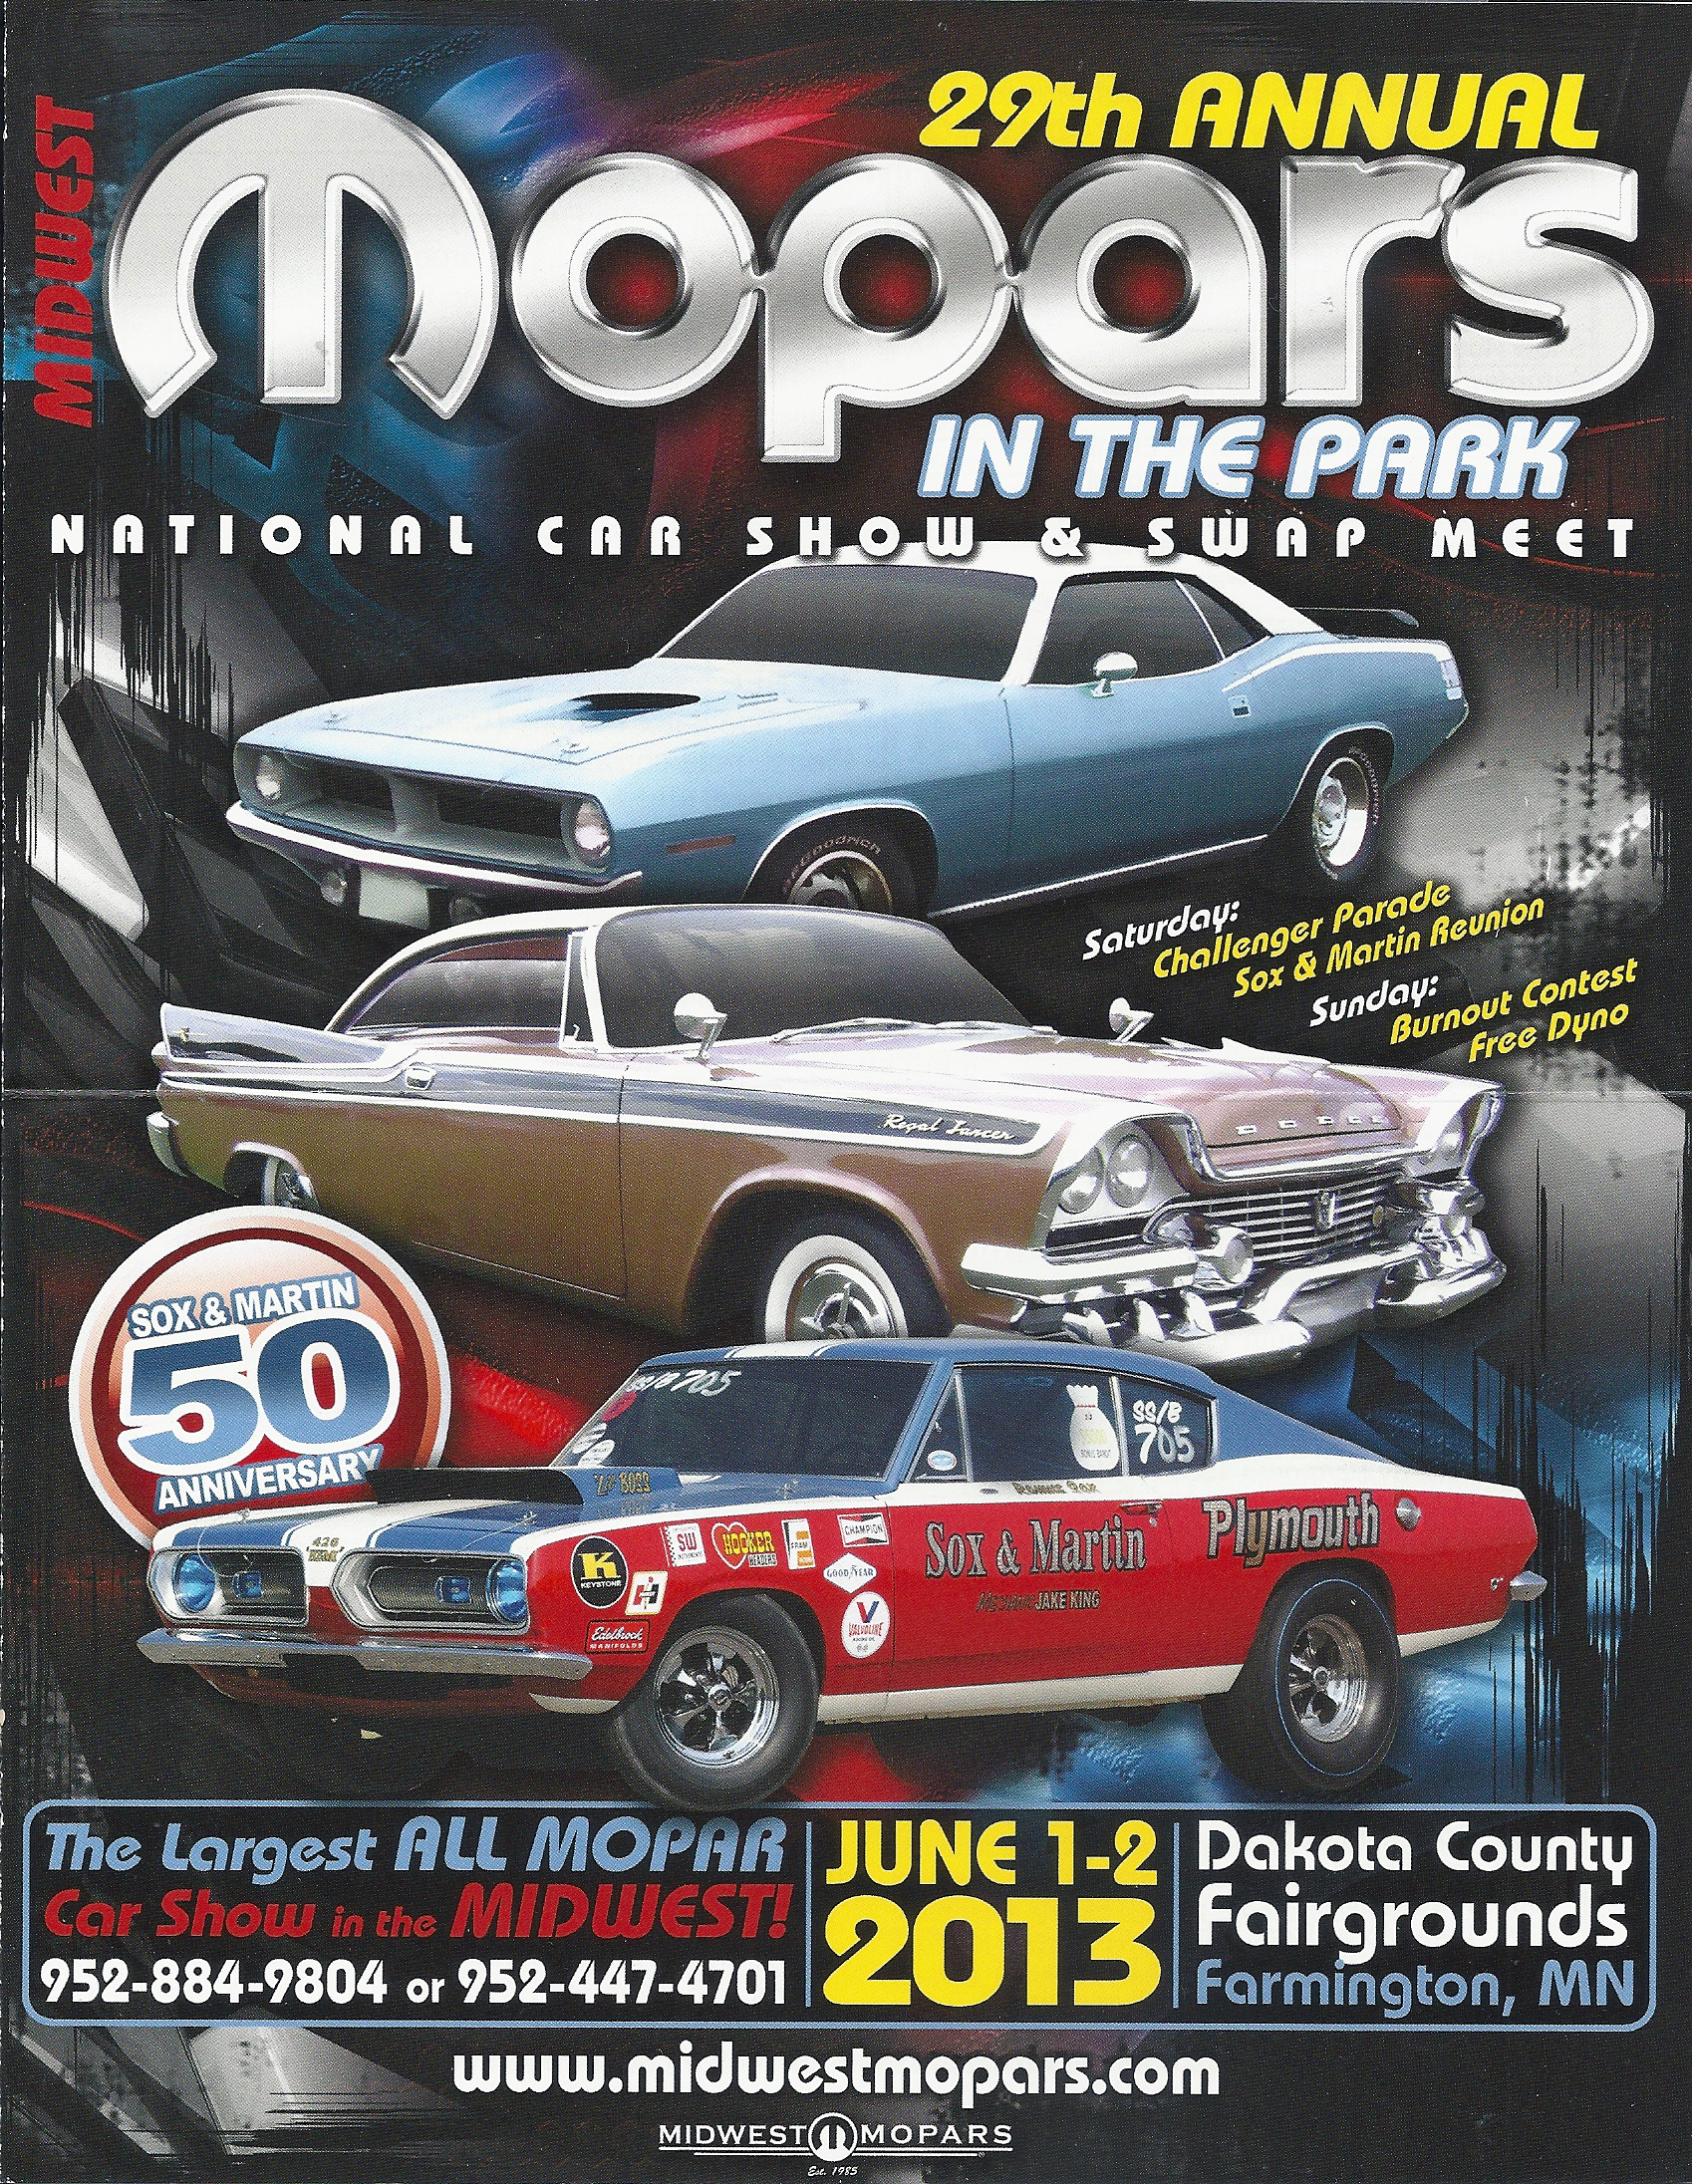 Mopars in the Park